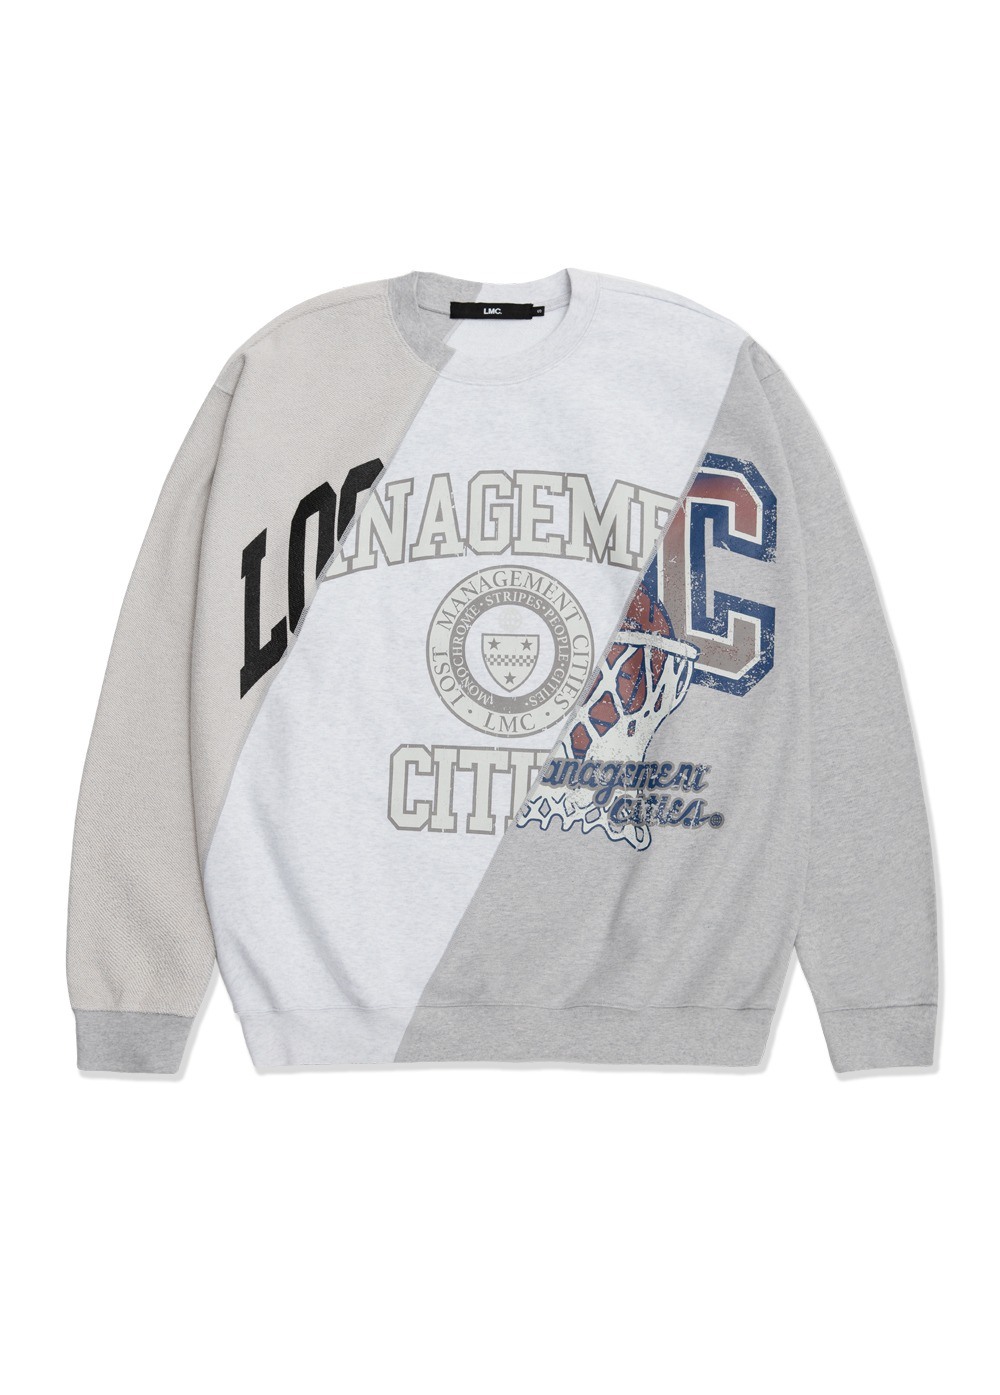 LMC UNIV TRIDIAGONAL OVERSIZED SWEATSHIRT heather gray